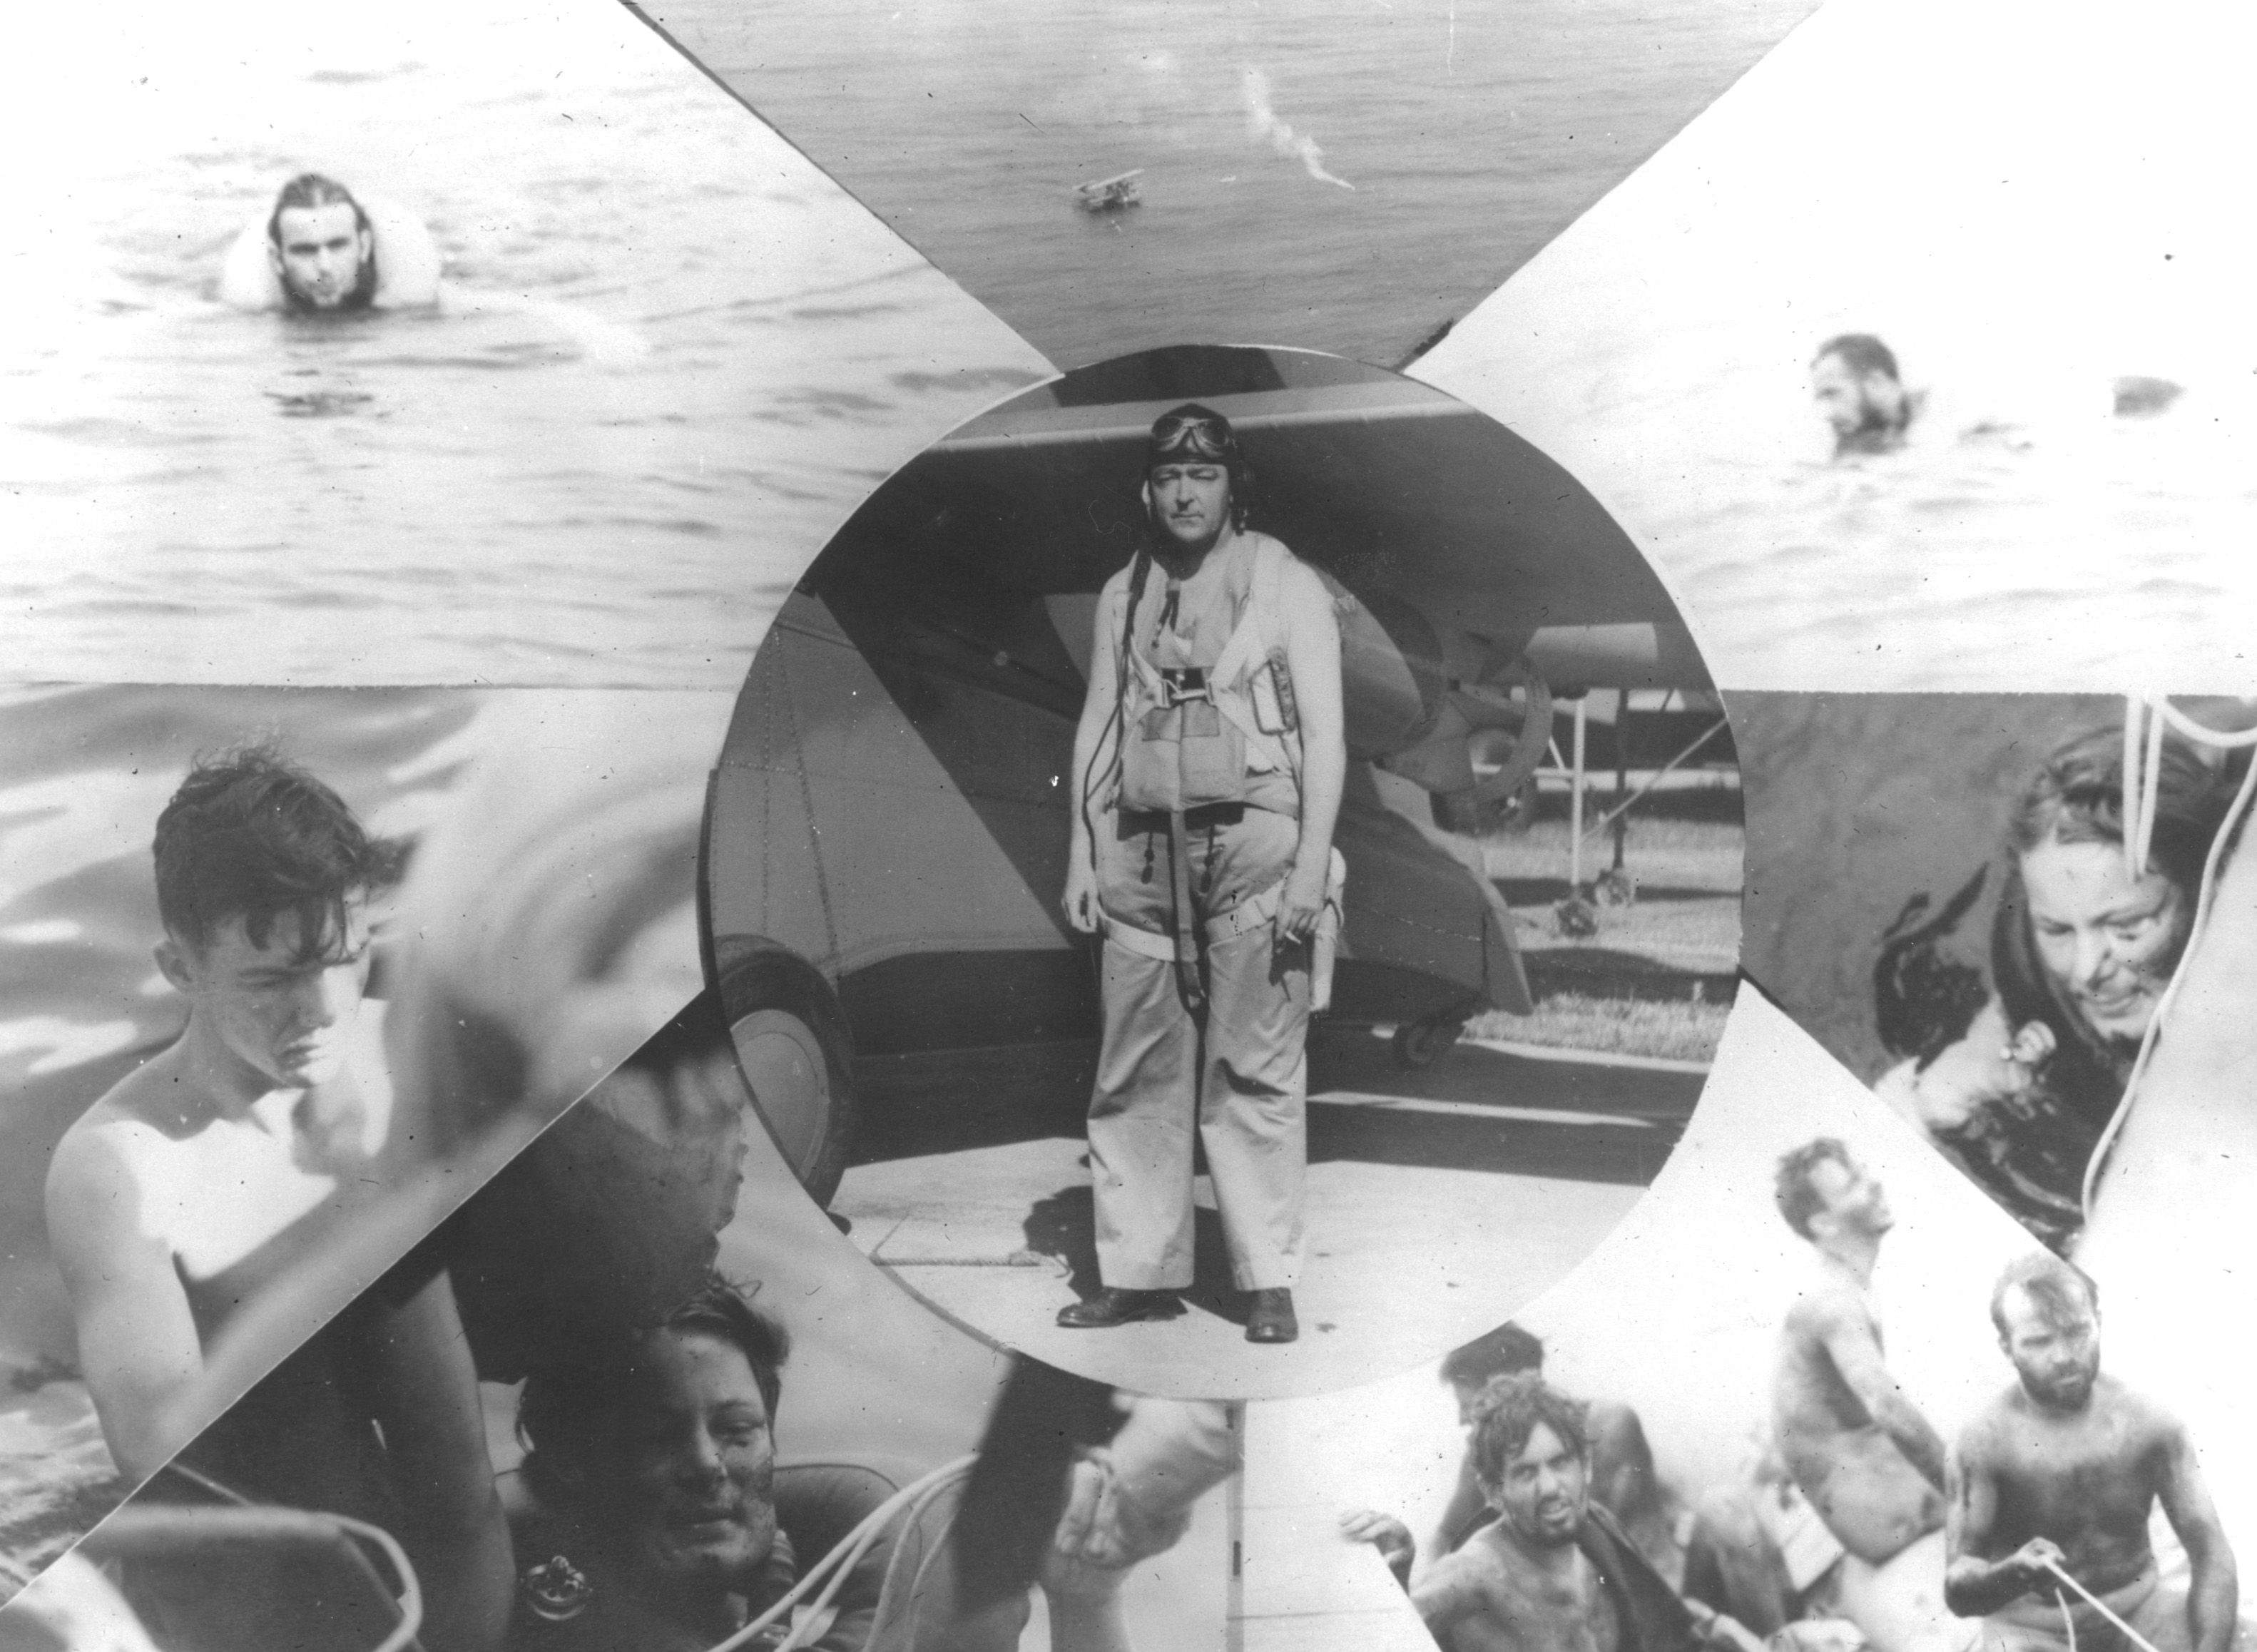 A Collage Of P Os Showing Cdr Richard Burke And His Rescue Of The Surviving Crewmen Of